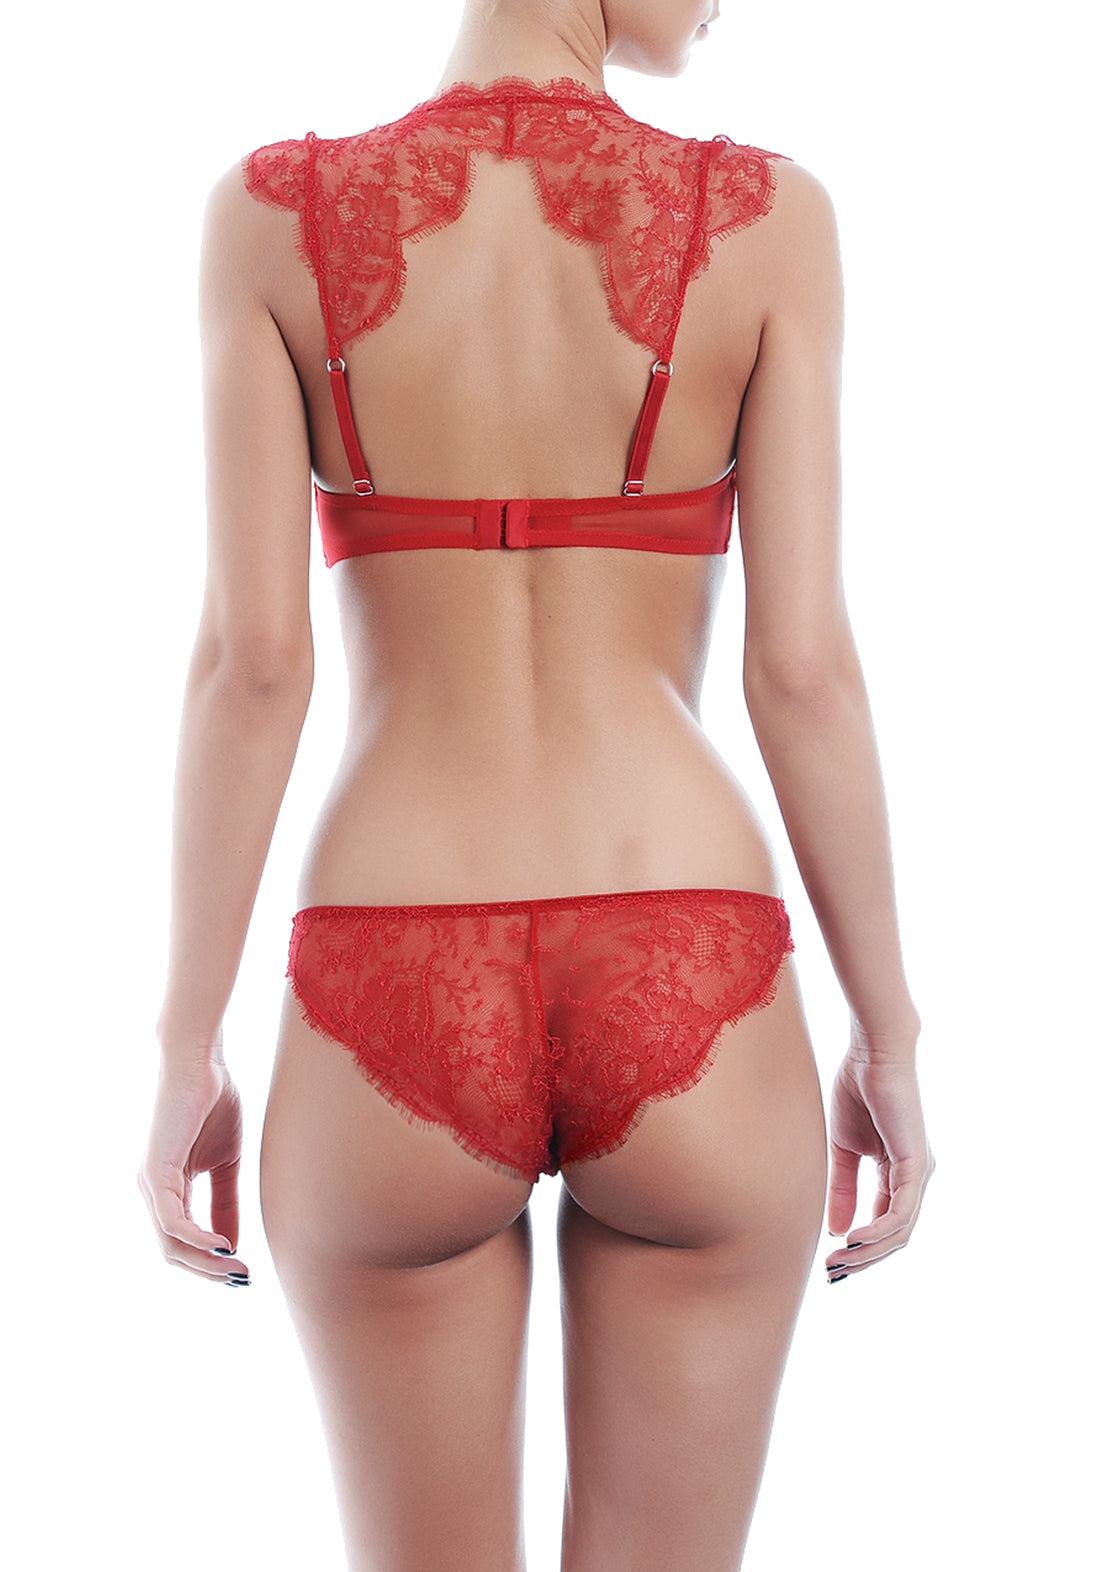 Belle Du Jour Push-Up Bra in Bright Red